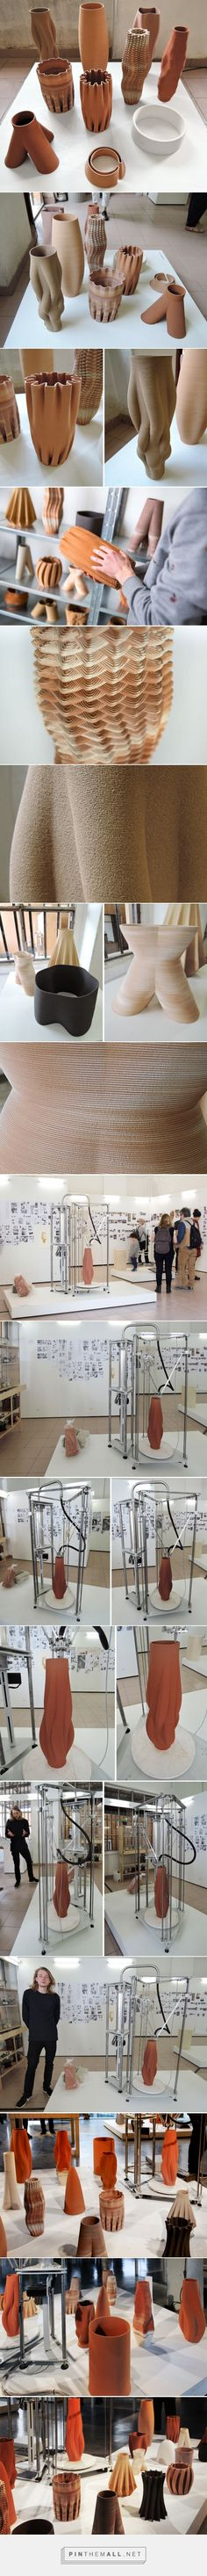 olivier van herpt's 3D printed ceramics at design academy eindhoven - created via http://pinthemall.net